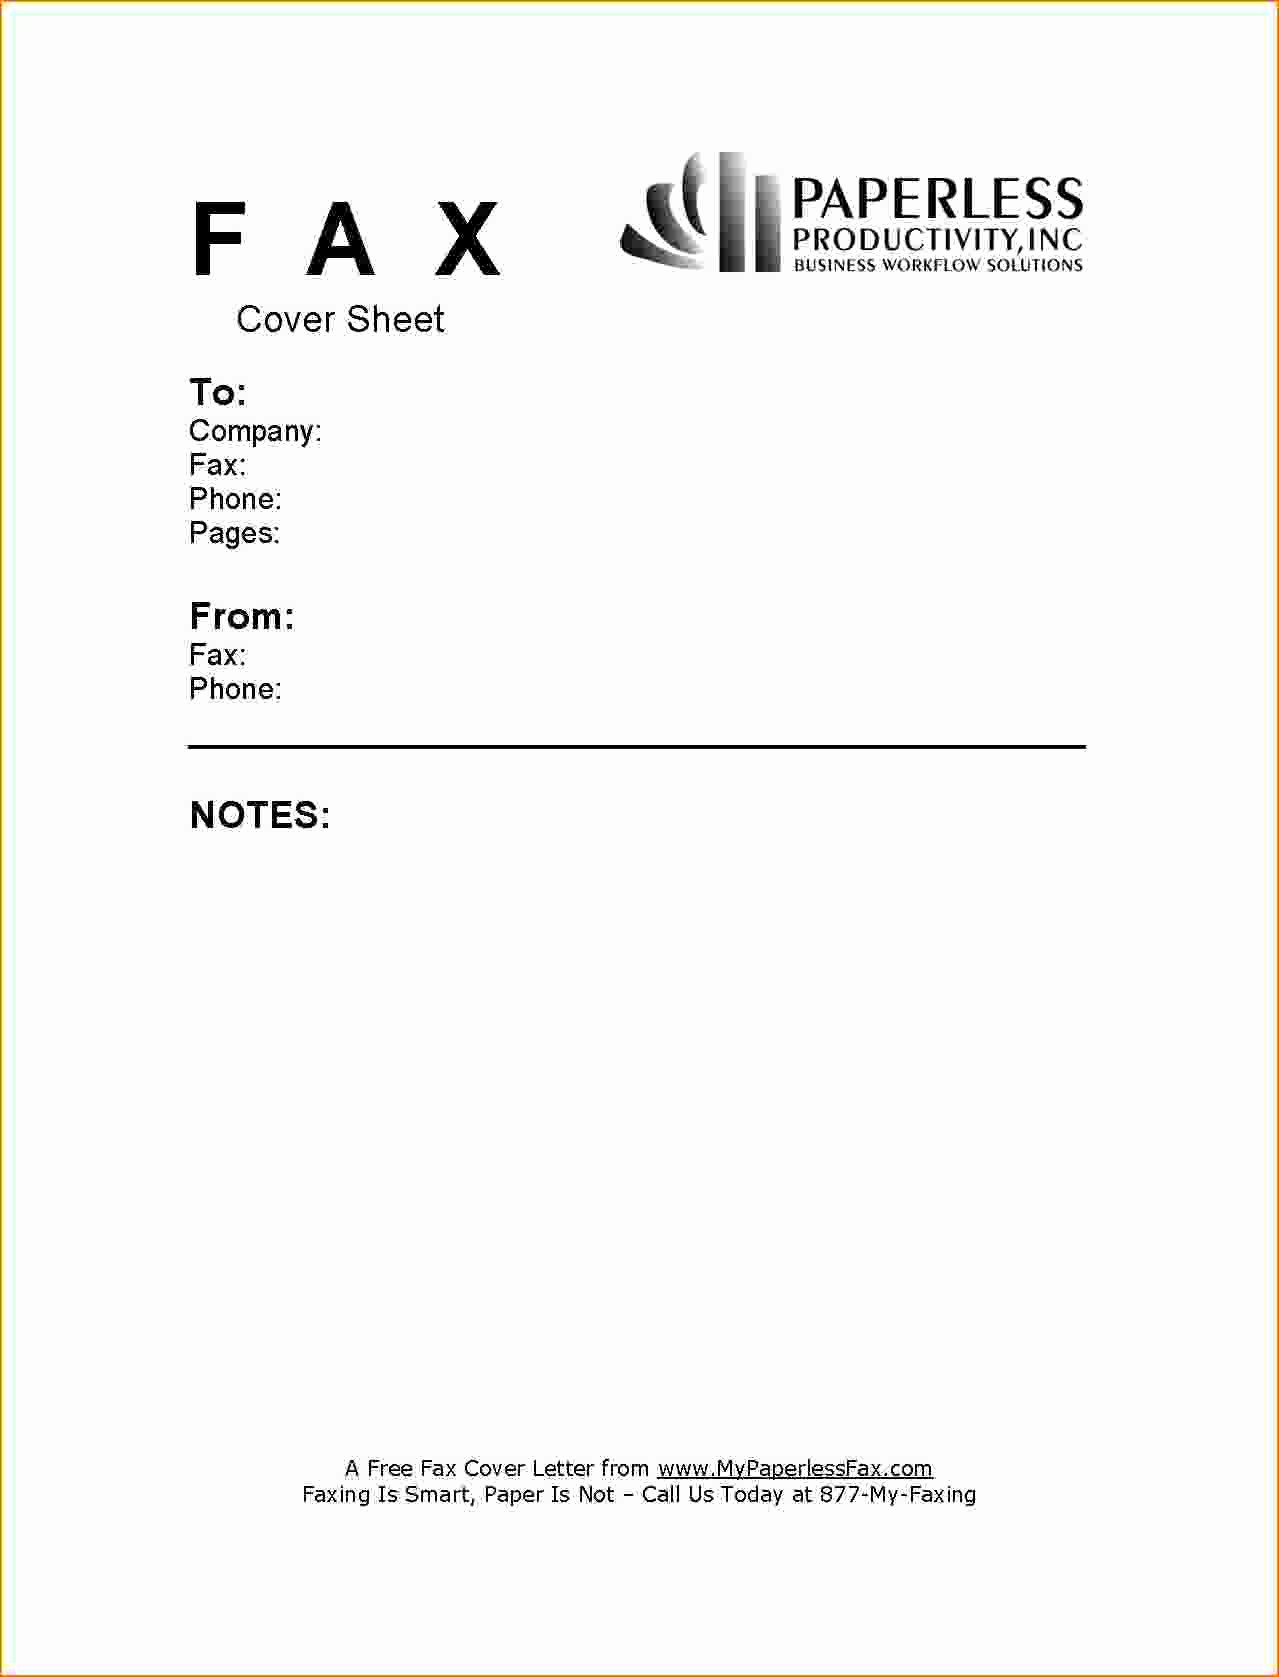 Cover Sheet for A Fax New 6 Example Fax Cover Sheet